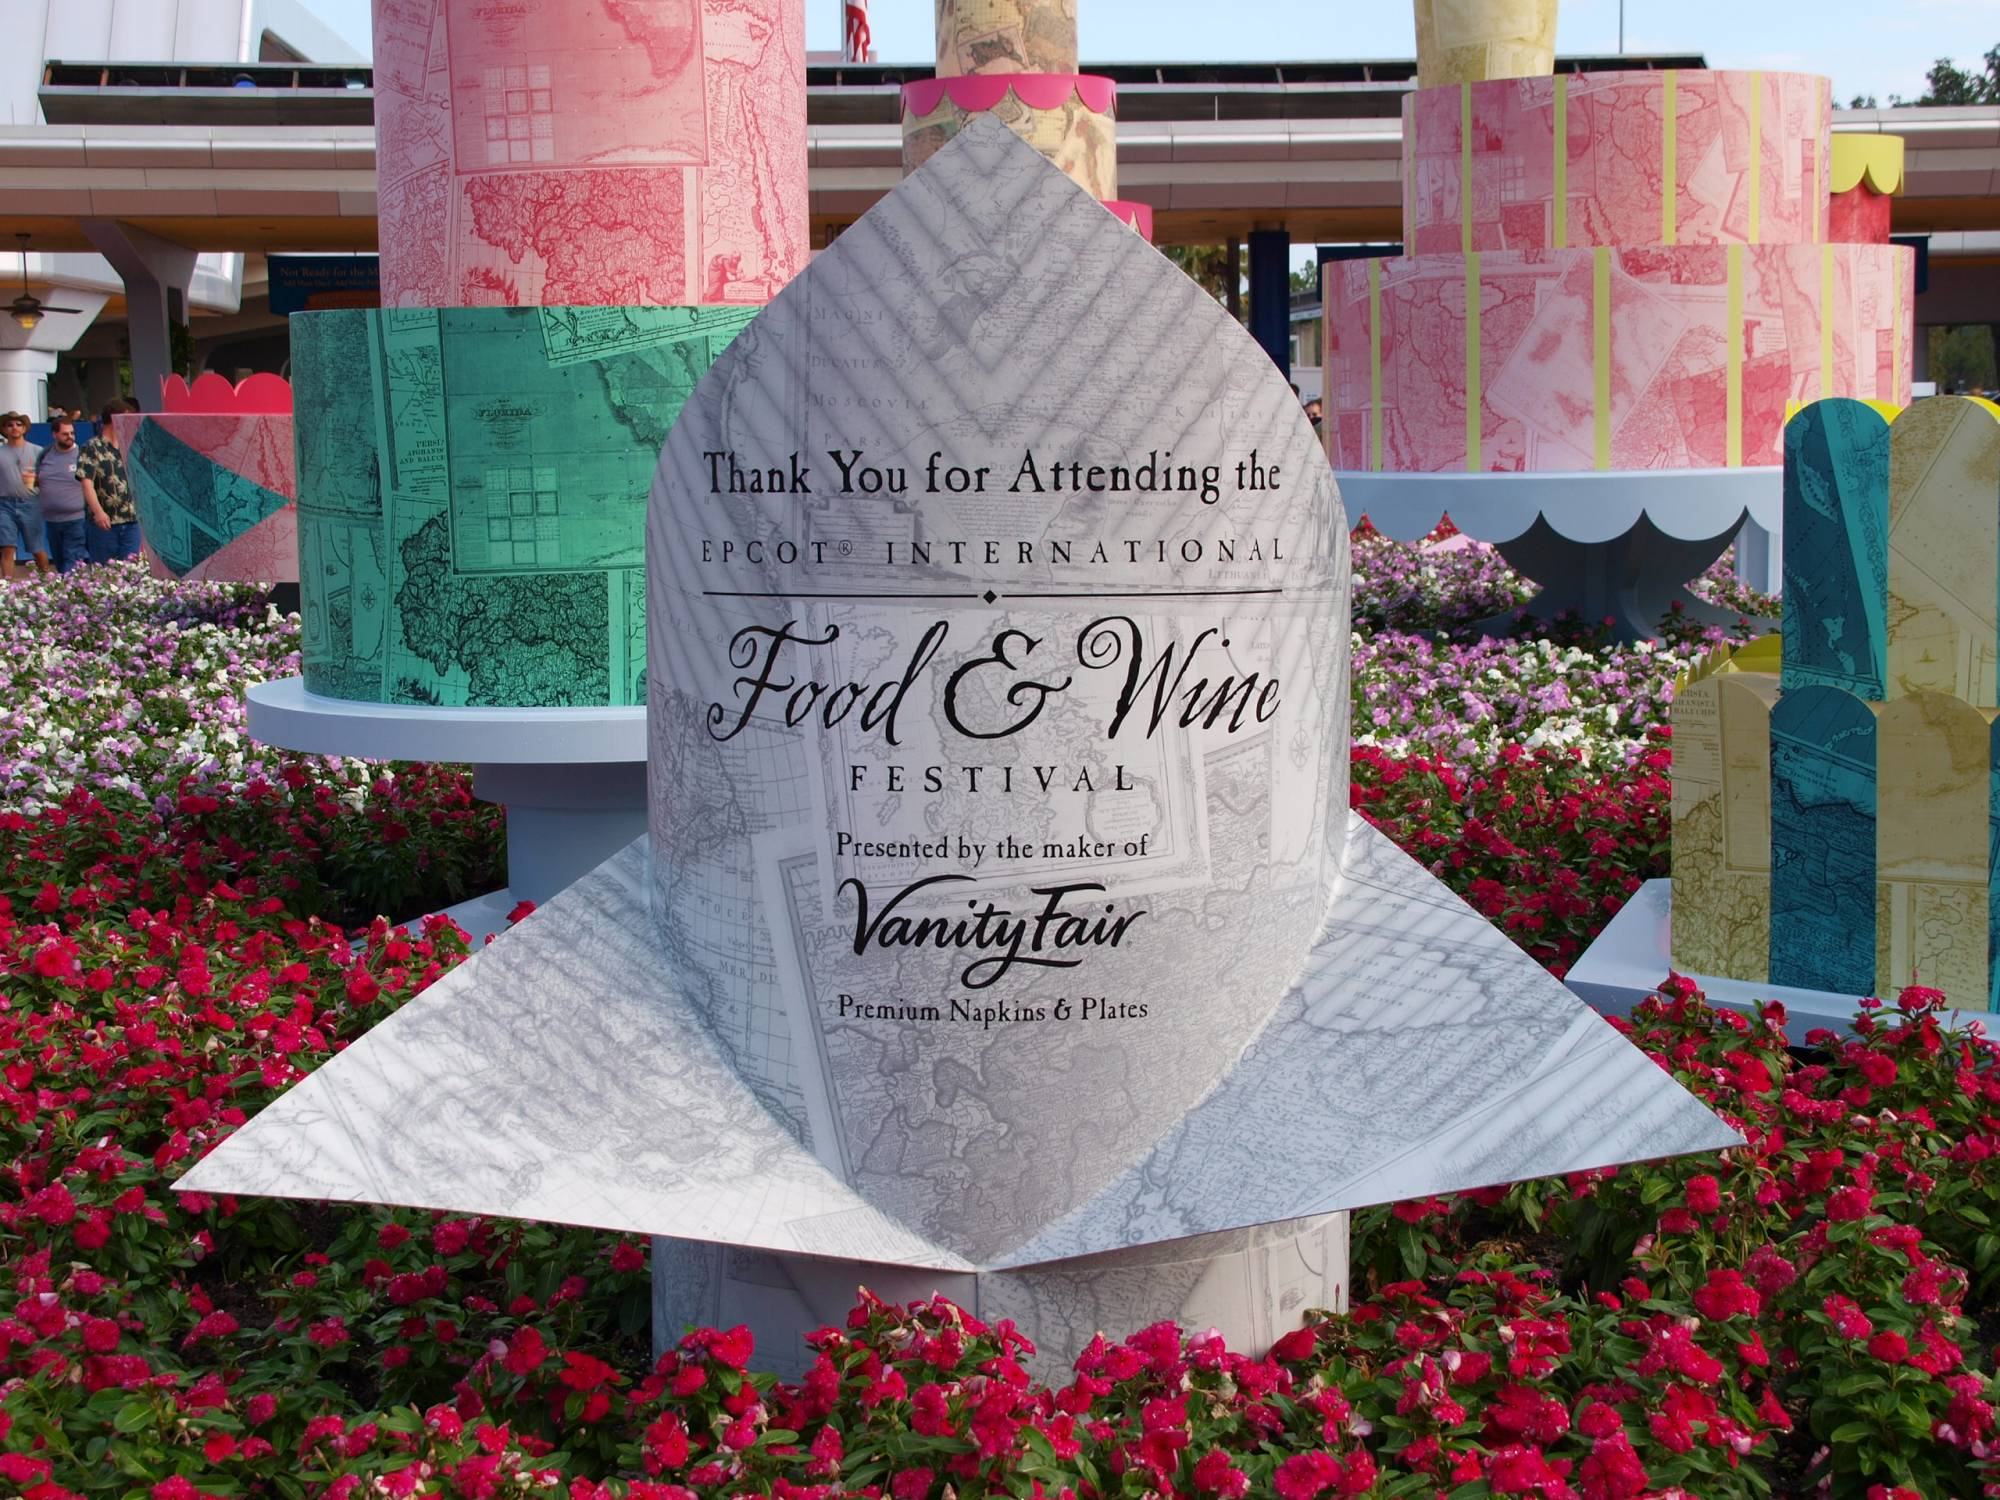 Enjoy the Epcot International Food & Wine Festival even while expecting | PassPorter.com